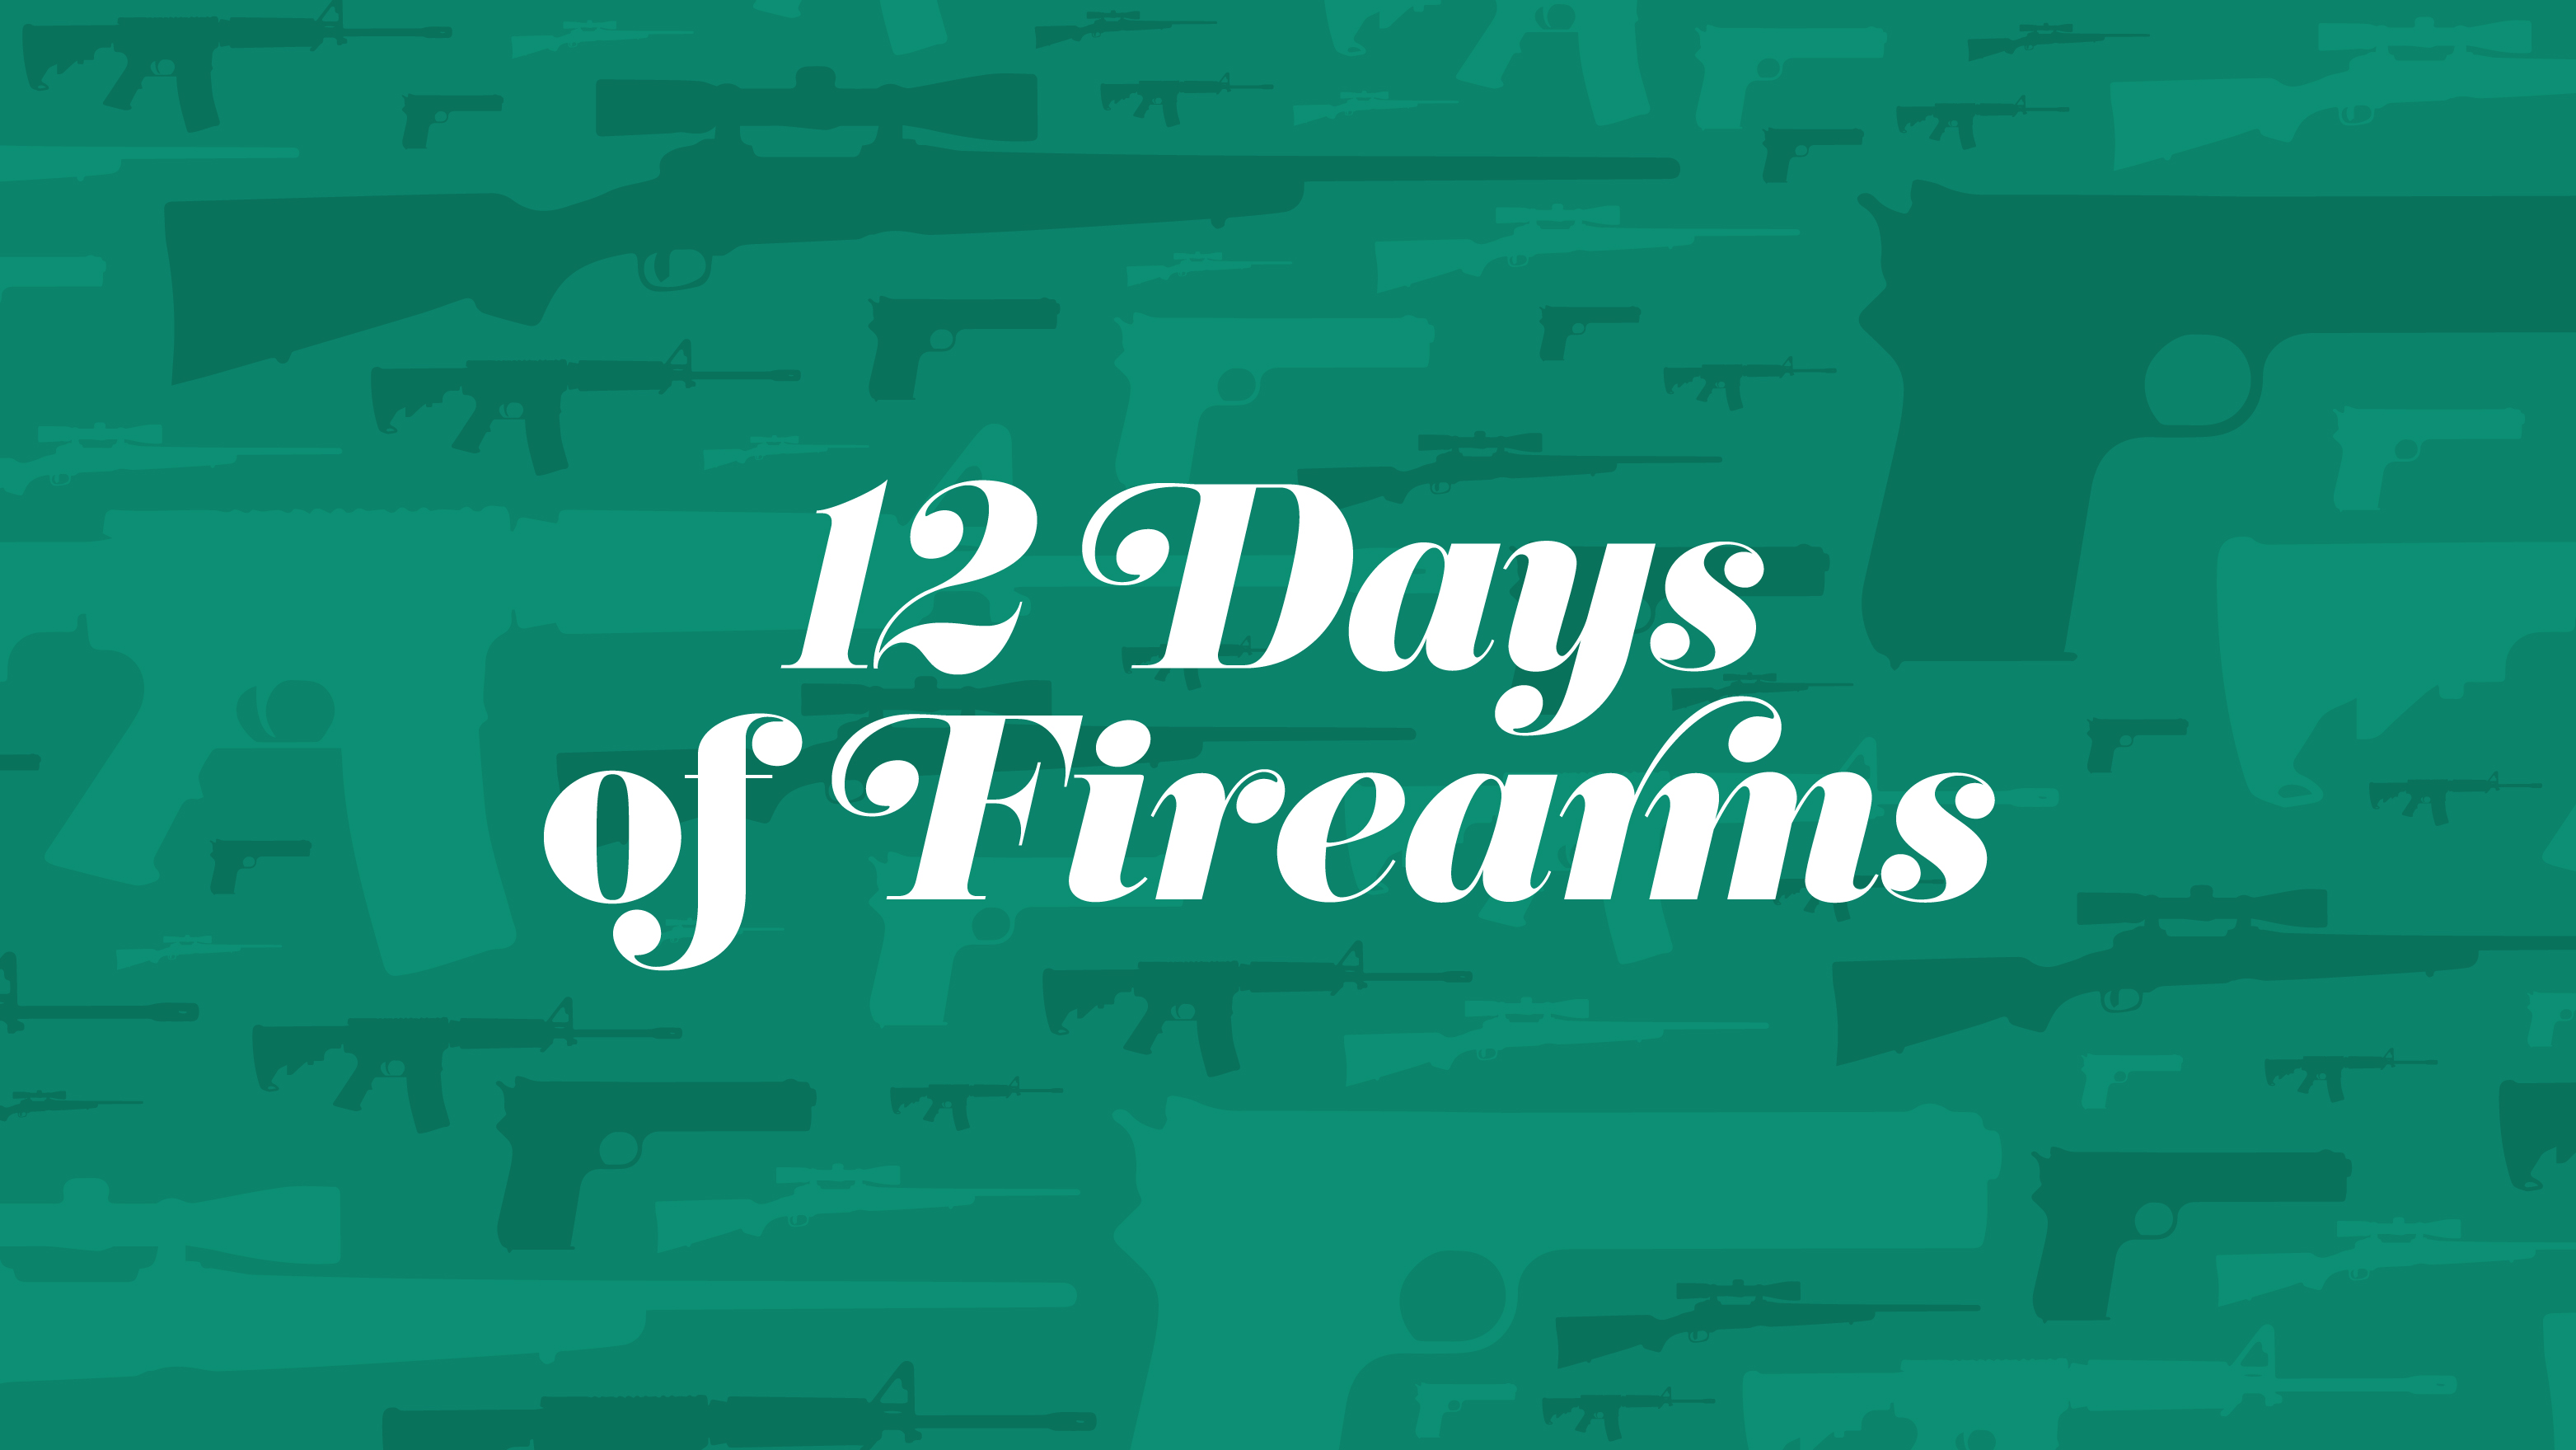 Day 4: Ed McGivern's Smith & Wesson Model No. 3 Revolver